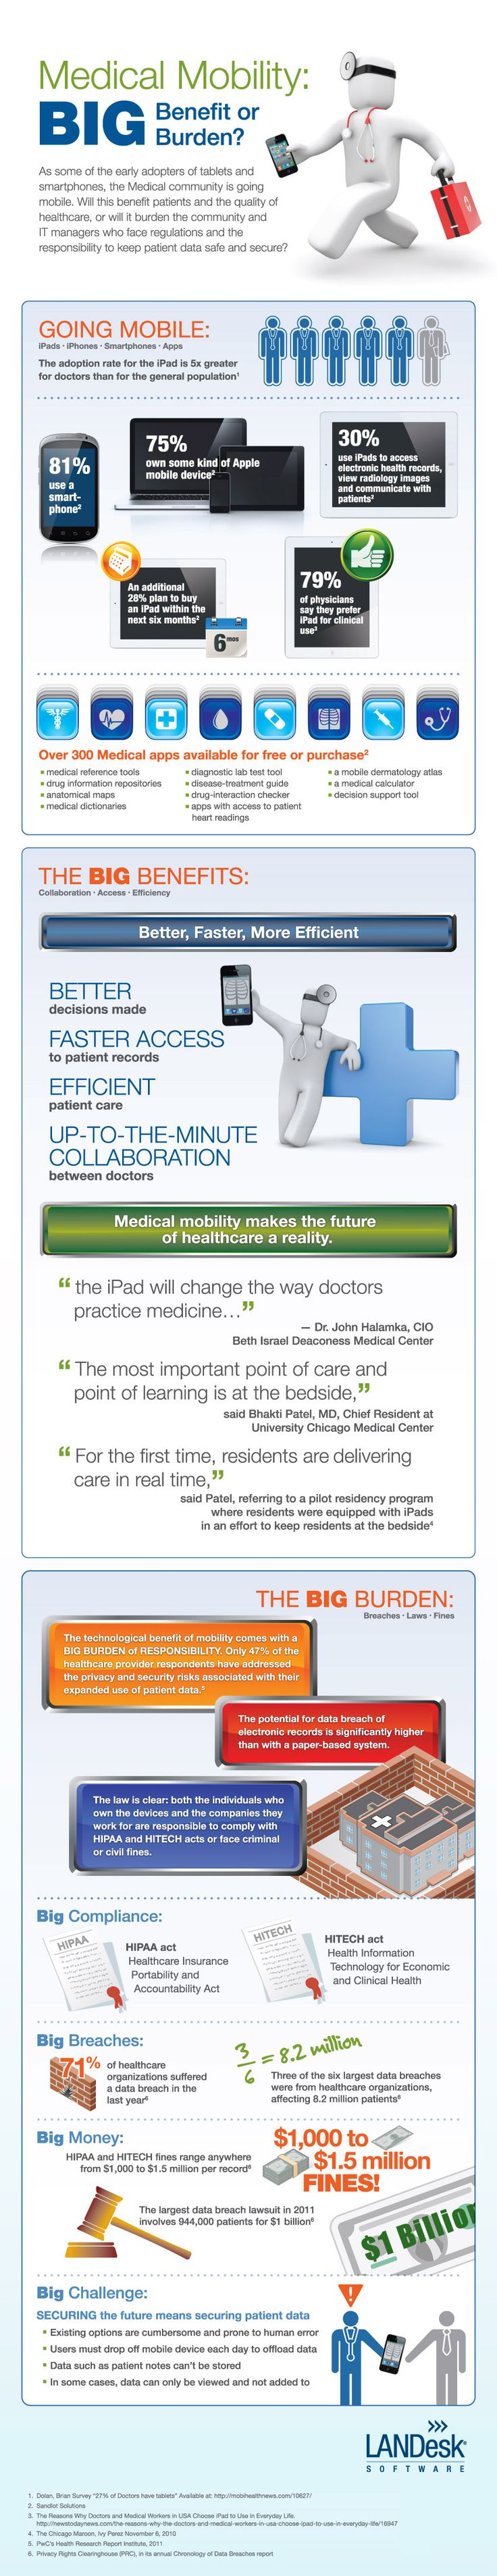 Medical Mobility #Infographic - benefit or burden?